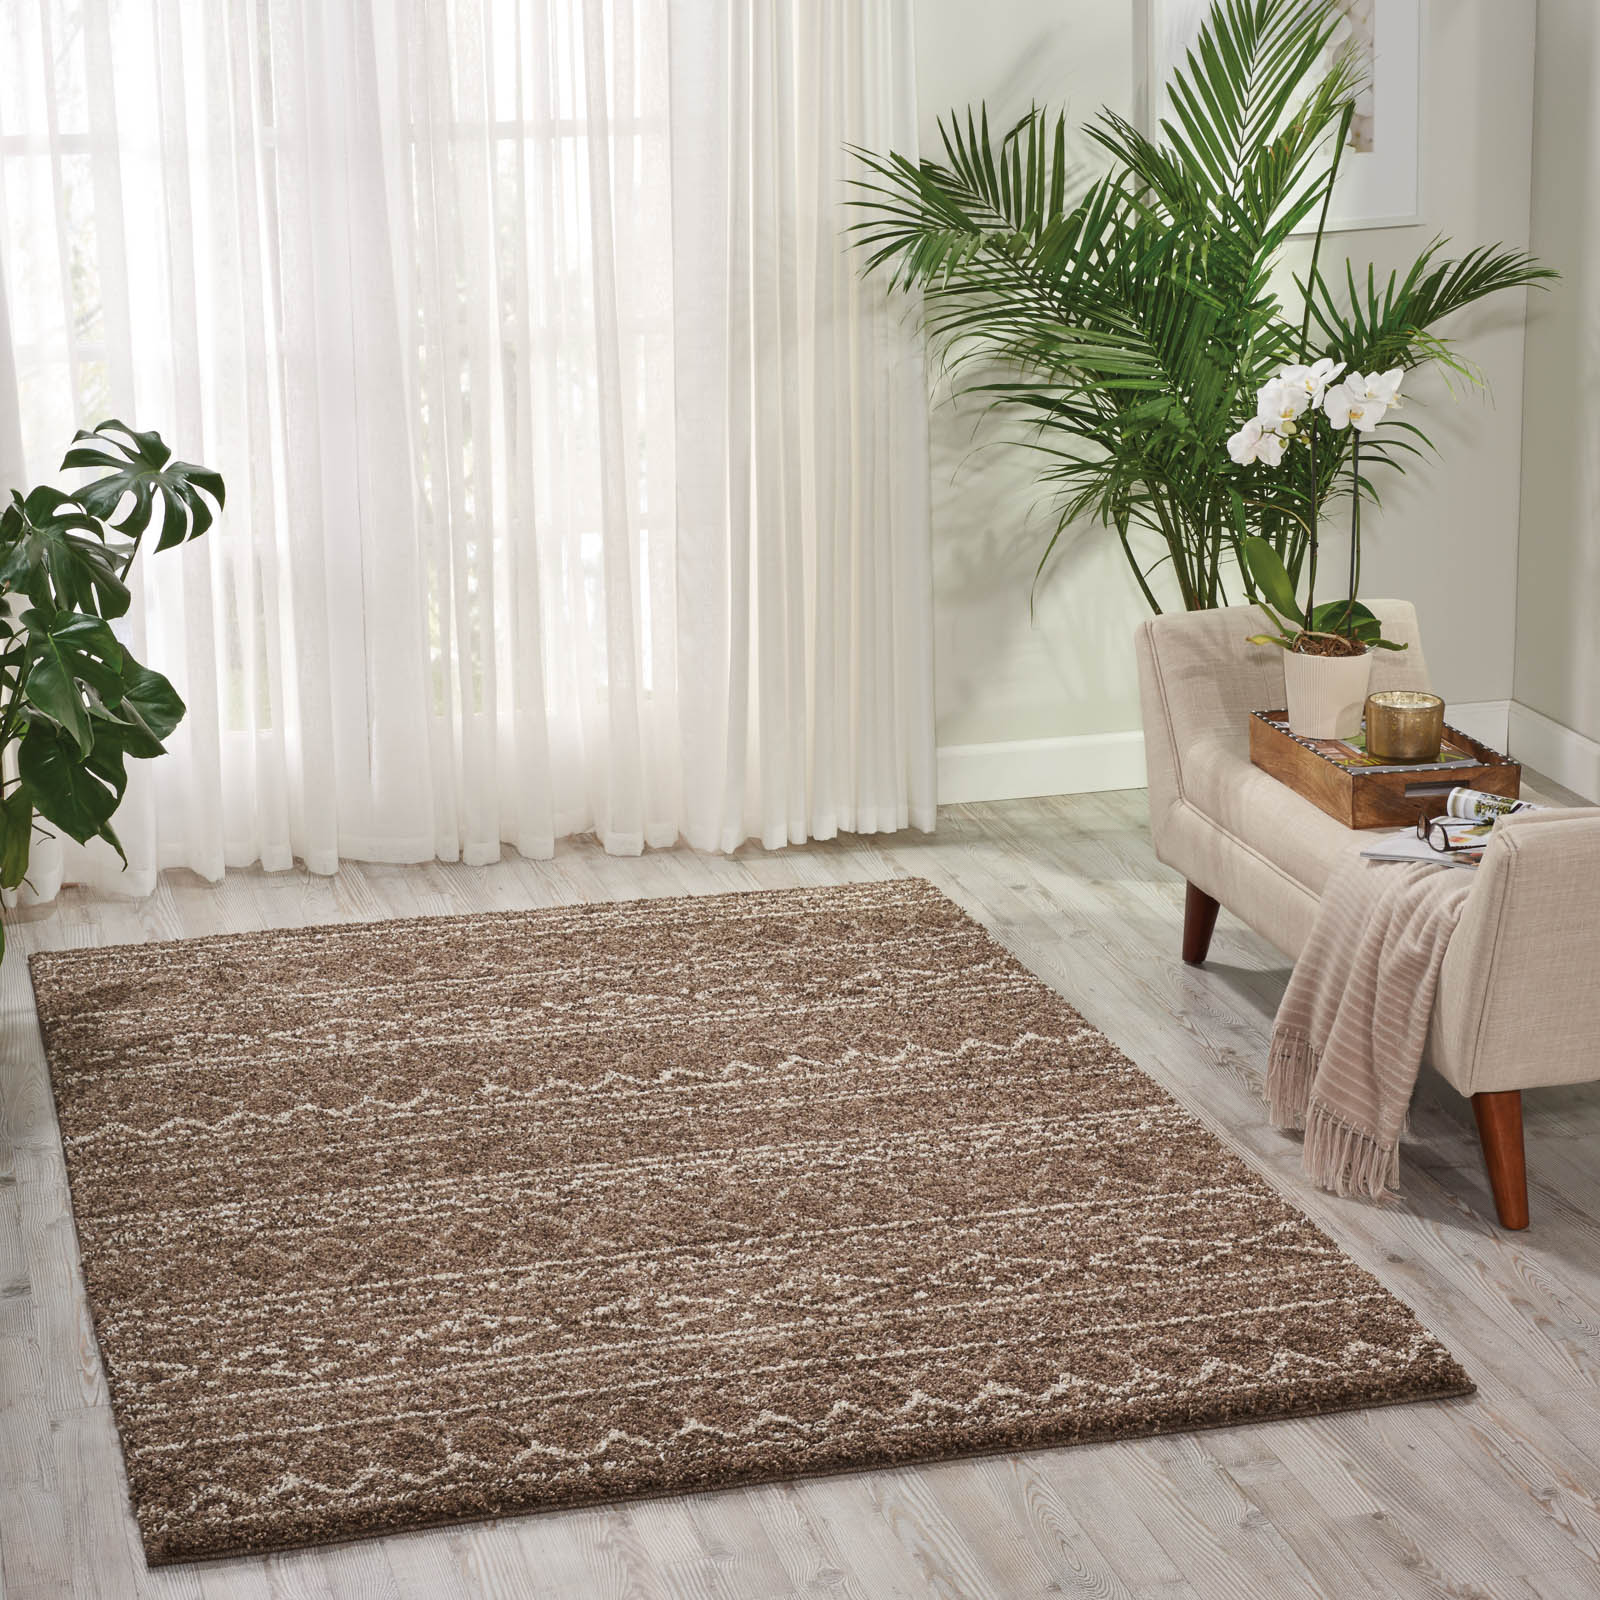 Tangier Rugs TAN03 in Latte